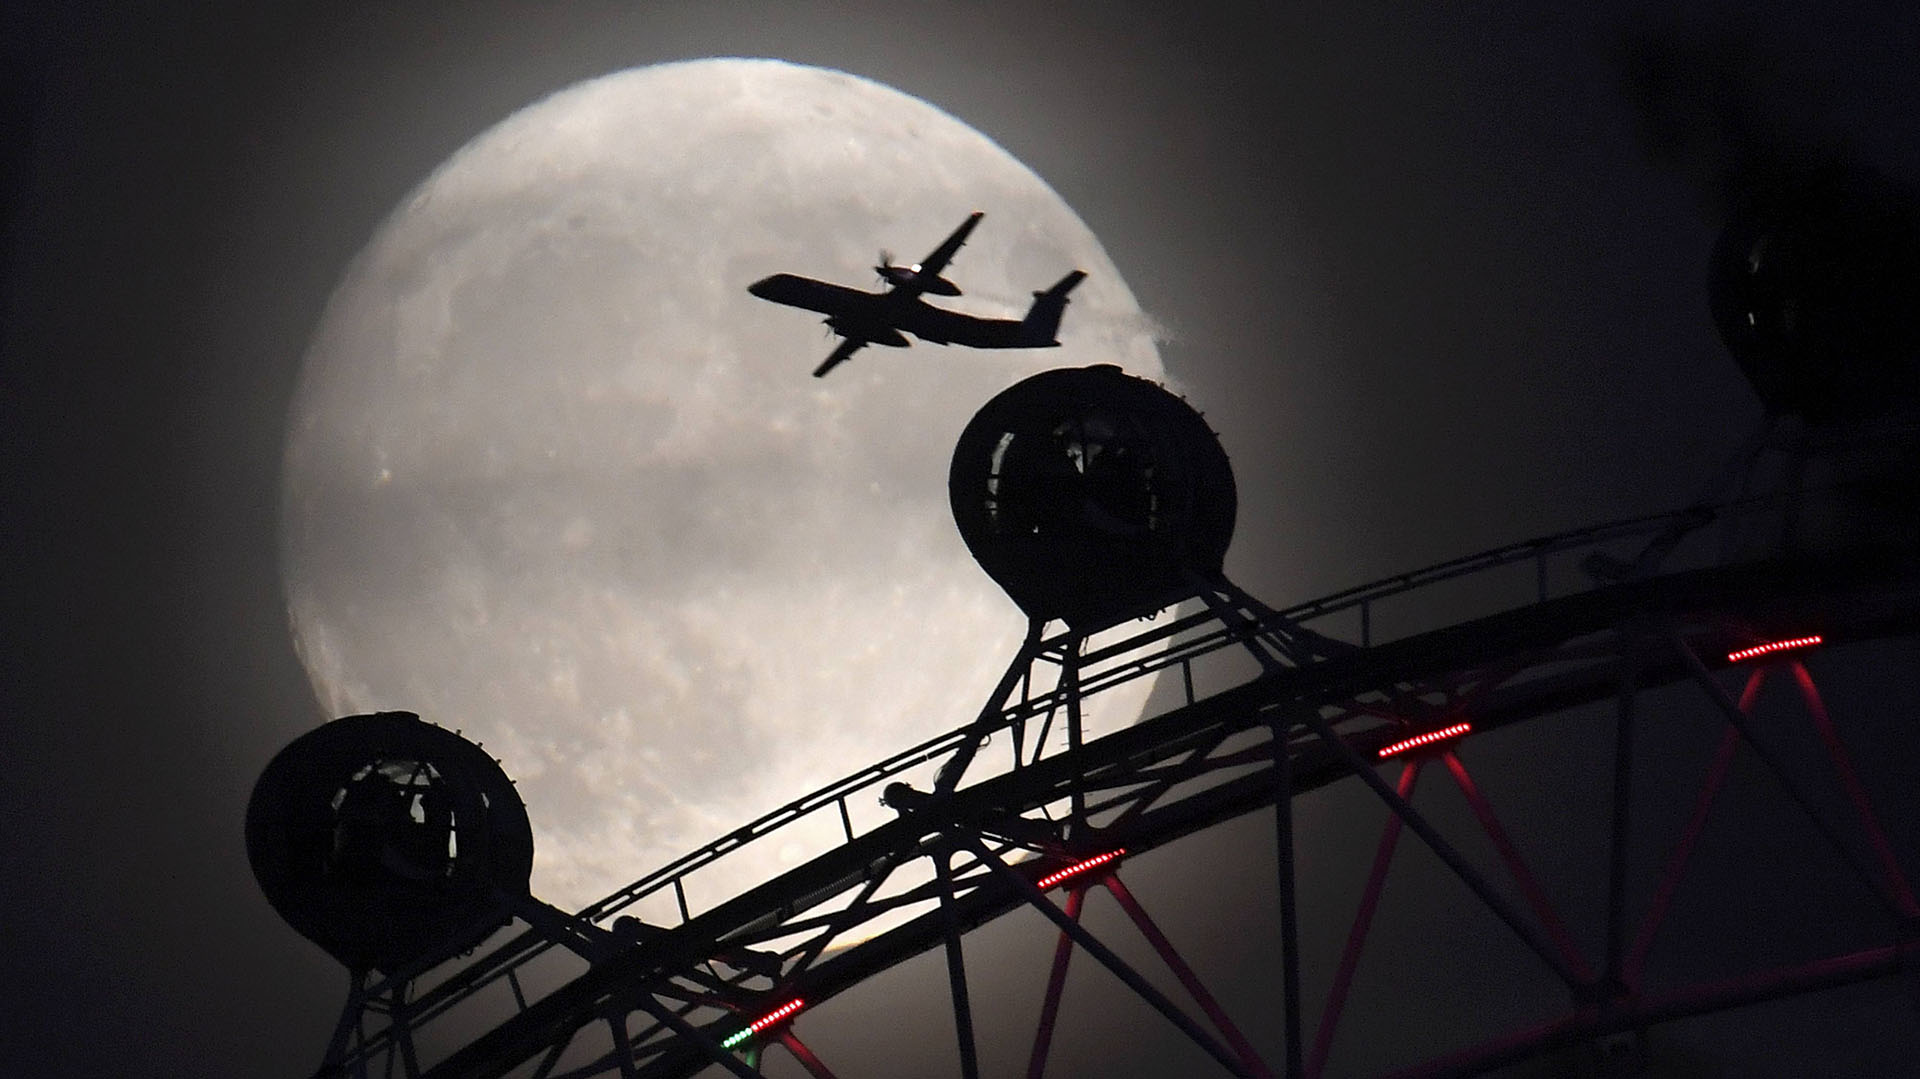 """An aeroplane flies past the London Eye wheel, and moon, a day before the """"supermoon"""" spectacle in London, Britain, November 13, 2016. REUTERS/Toby Melville"""